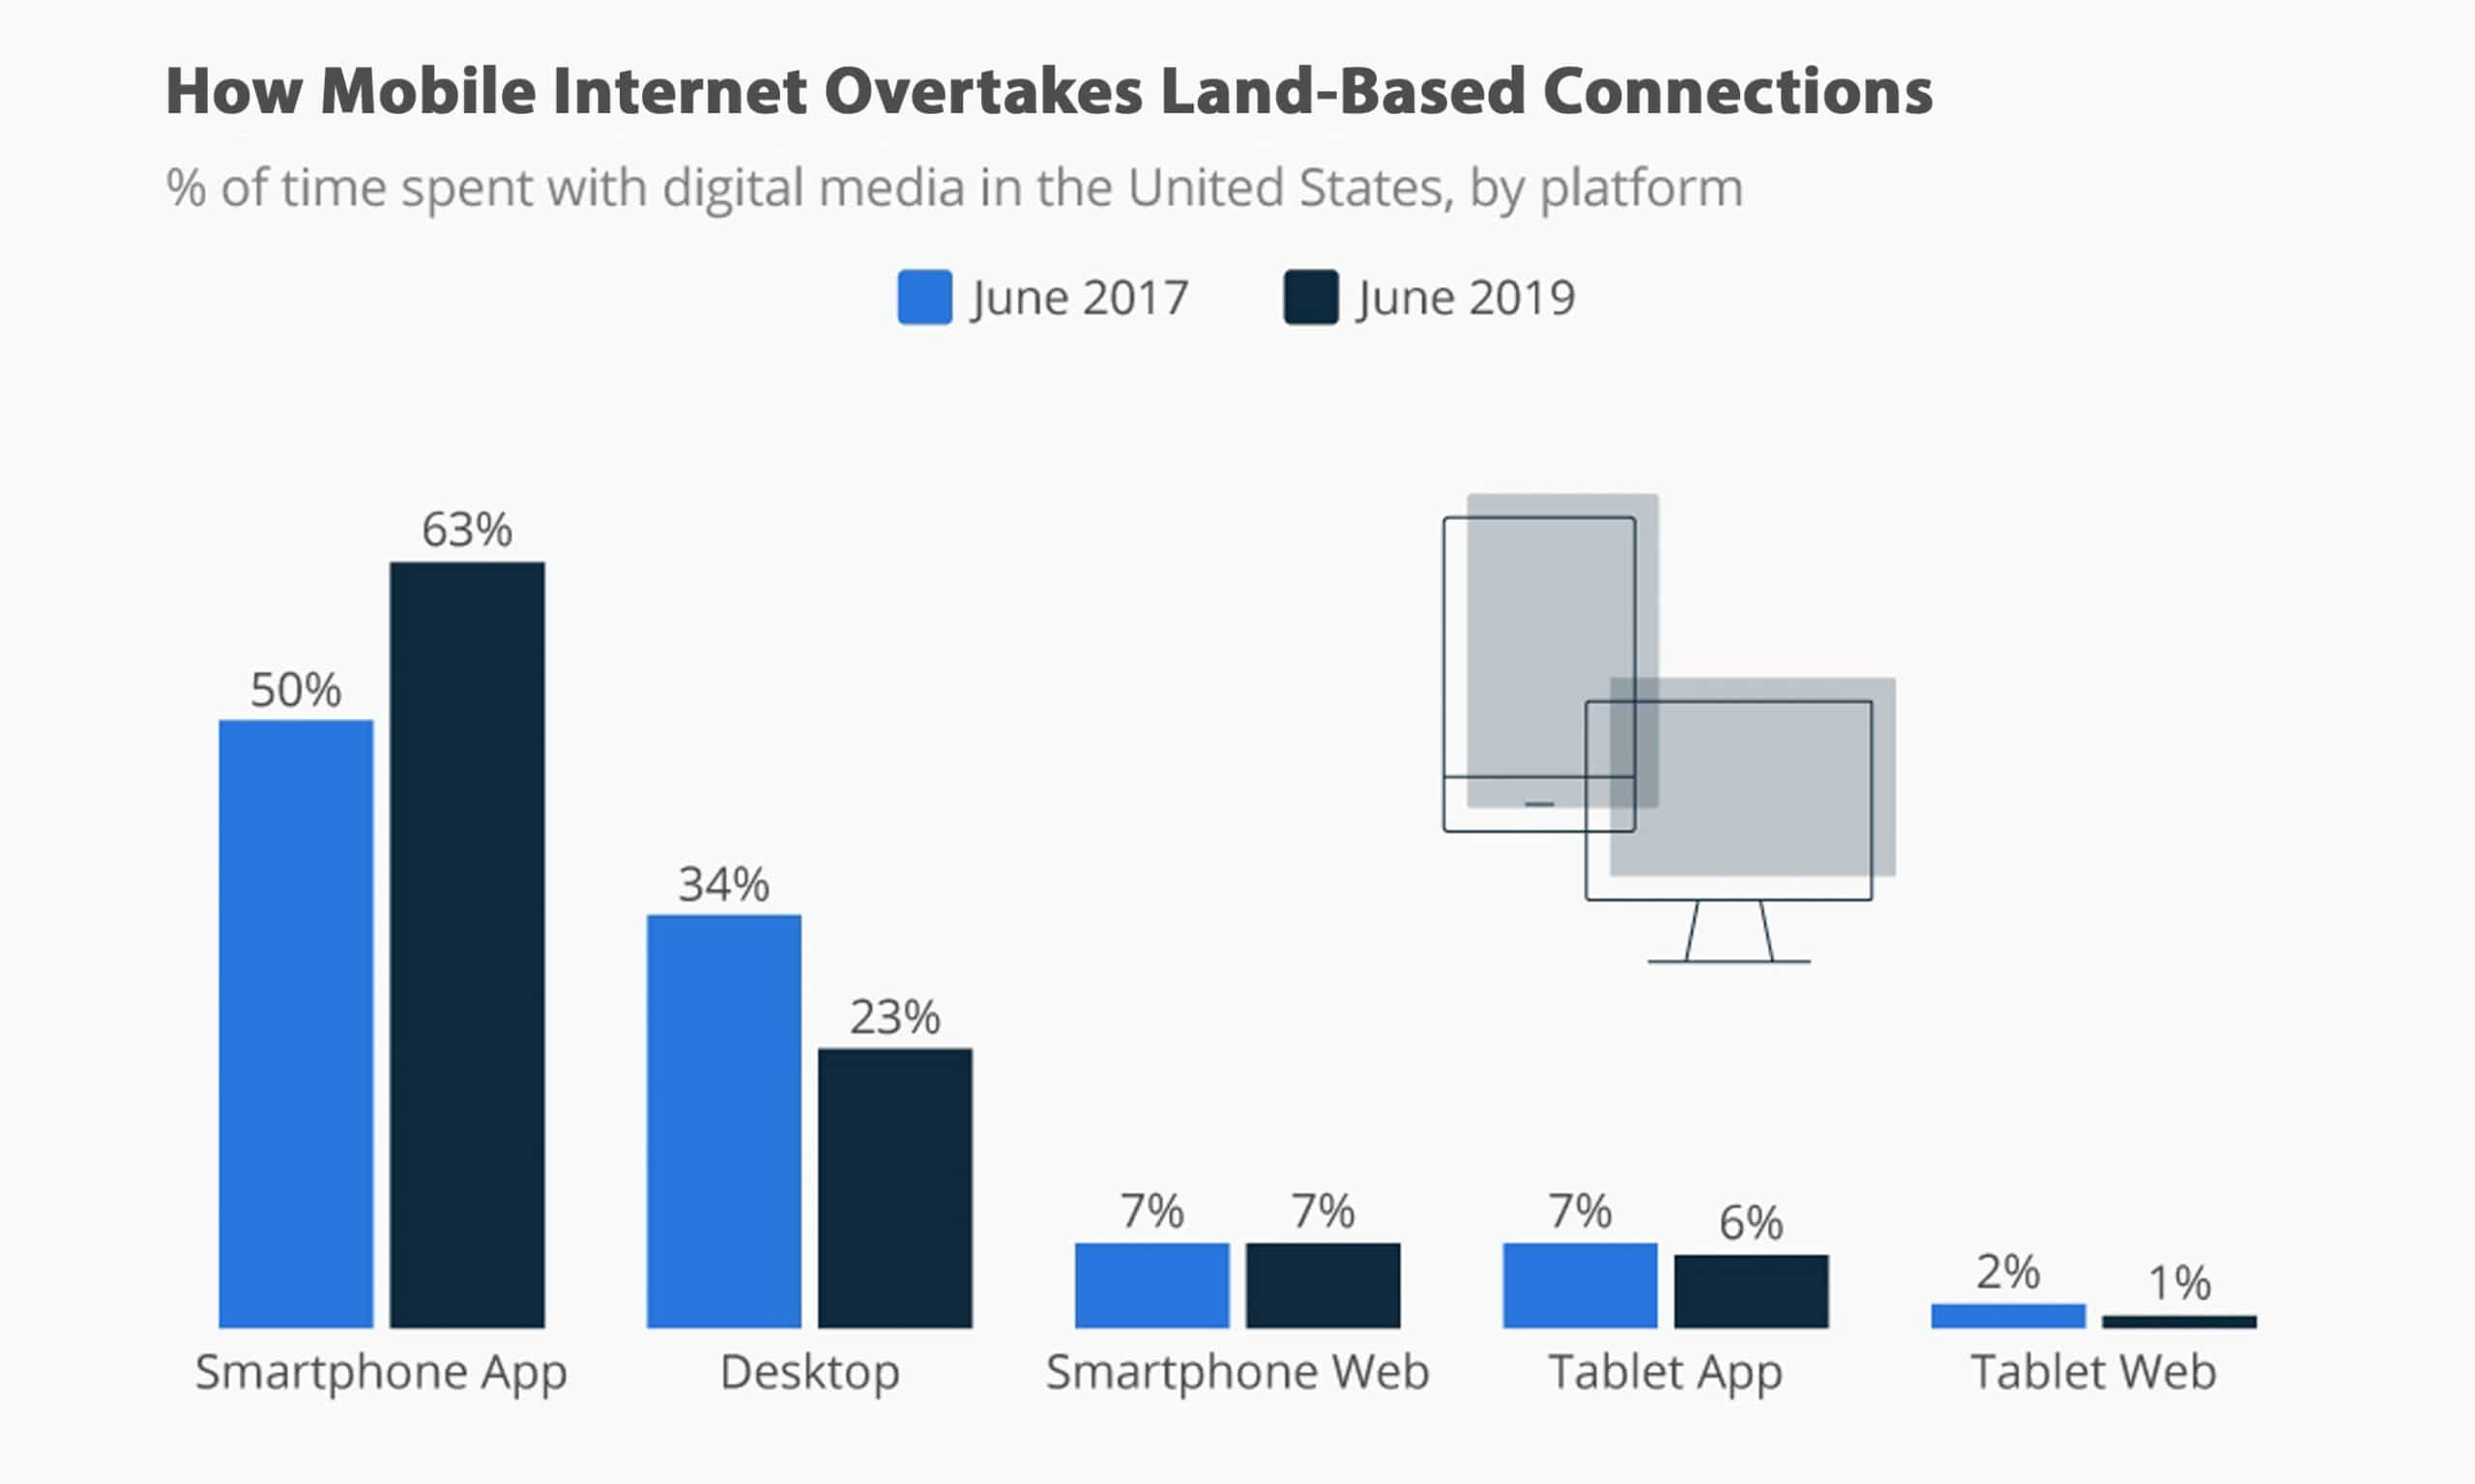 How Mobile Internet Overtakes Land-Based Connections